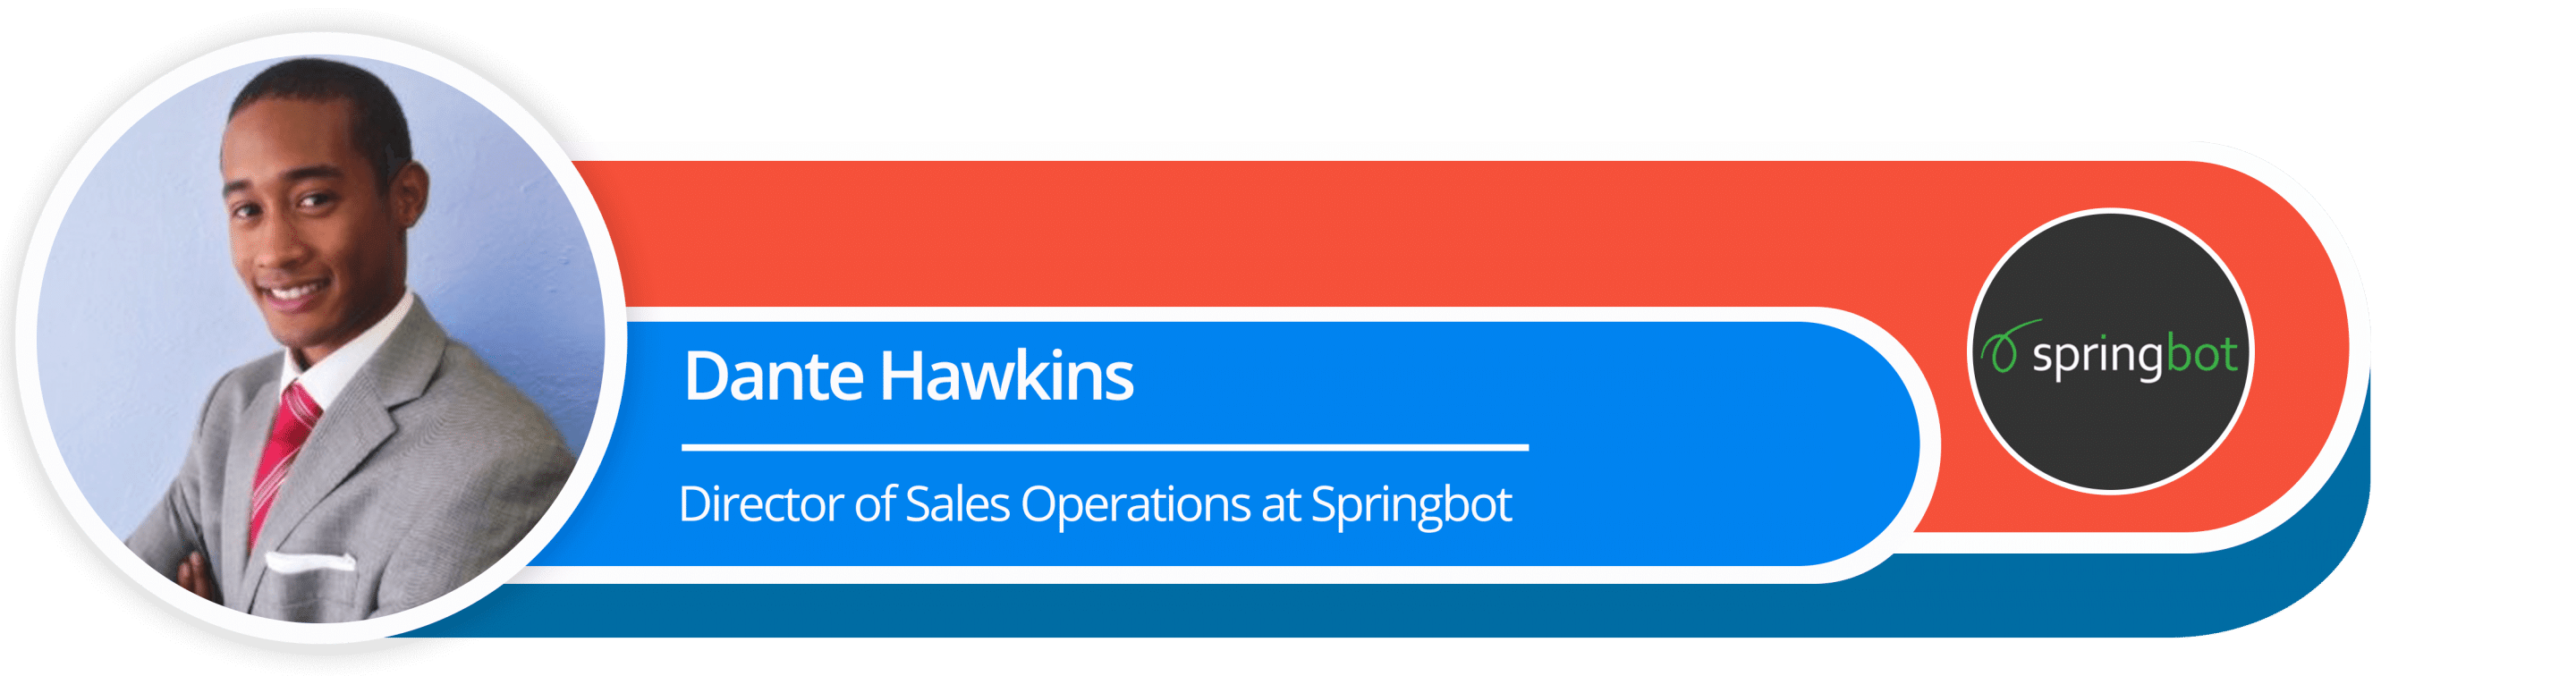 Dante Hawkins Director of Sales Operations at Springbot